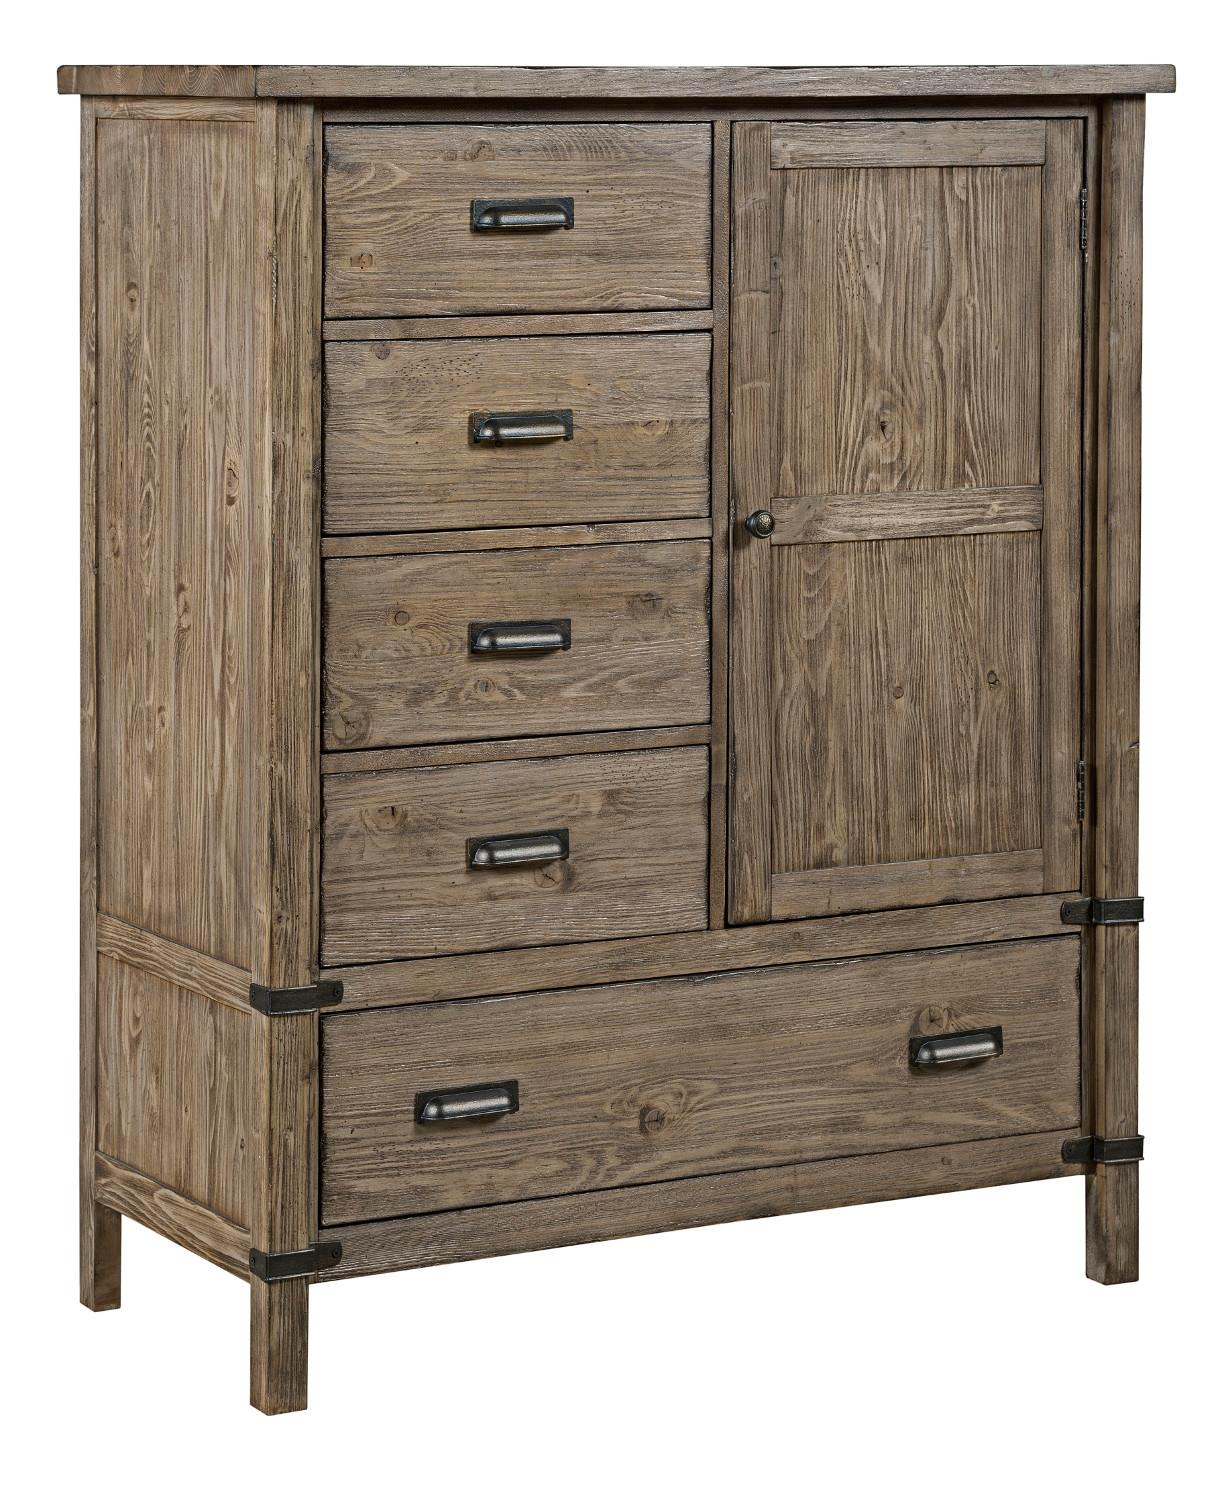 Foundry Door Chest by Kincaid Furniture at Johnny Janosik